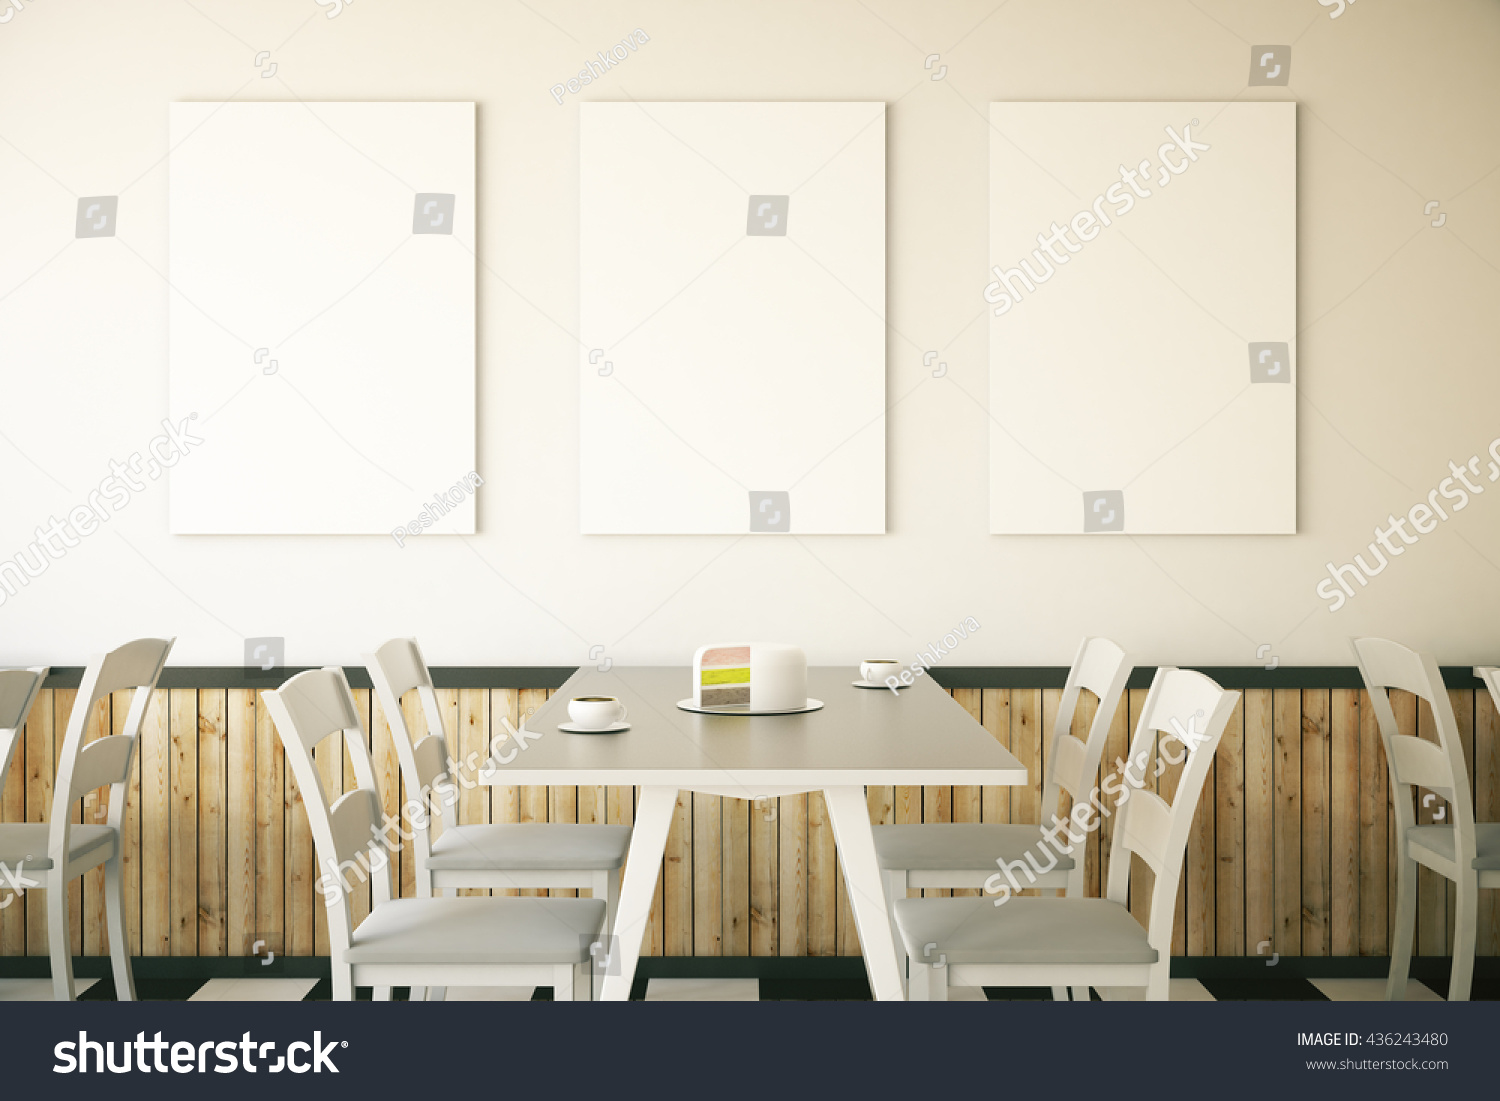 cafe interior cake on table three stock illustration 436243480